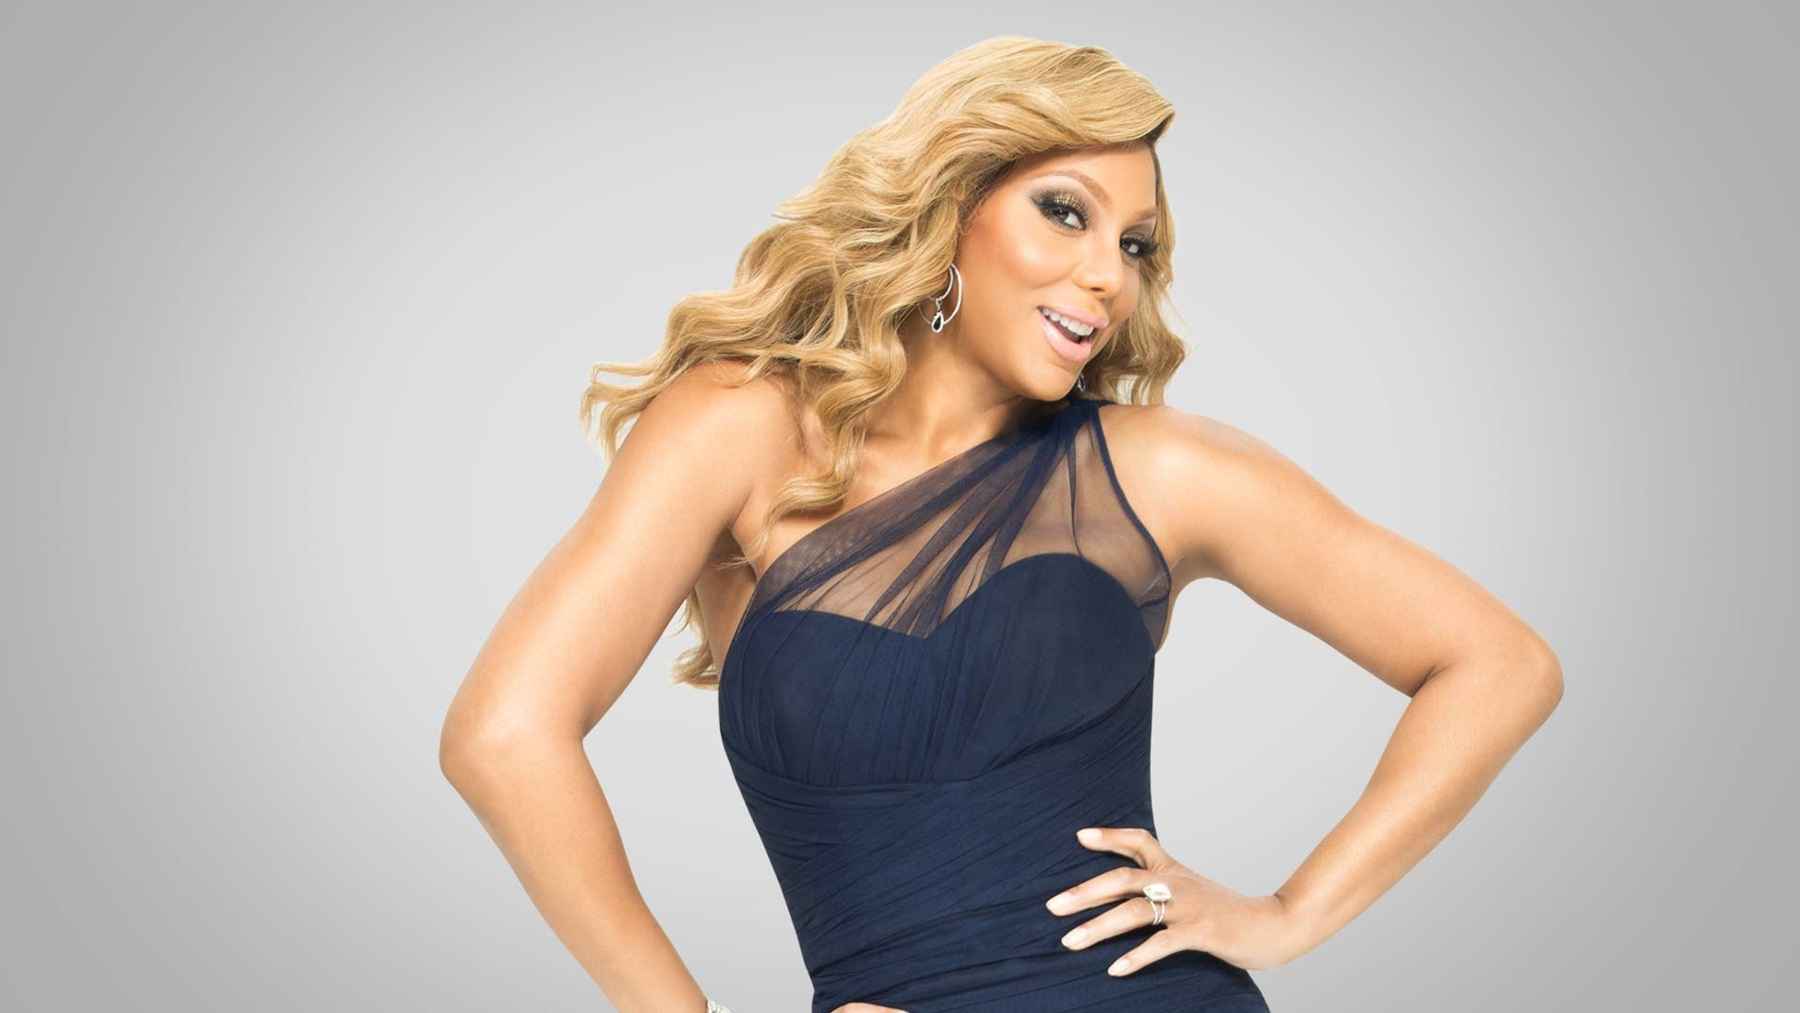 """""""tamar-braxton-is-unrecognizable-in-new-video-as-she-debuts-stunning-figure-after-20-pound-weight-loss-some-critics-say-vincent-herberts-ex-has-gone-too-far-with-the-plastic-surgery"""""""